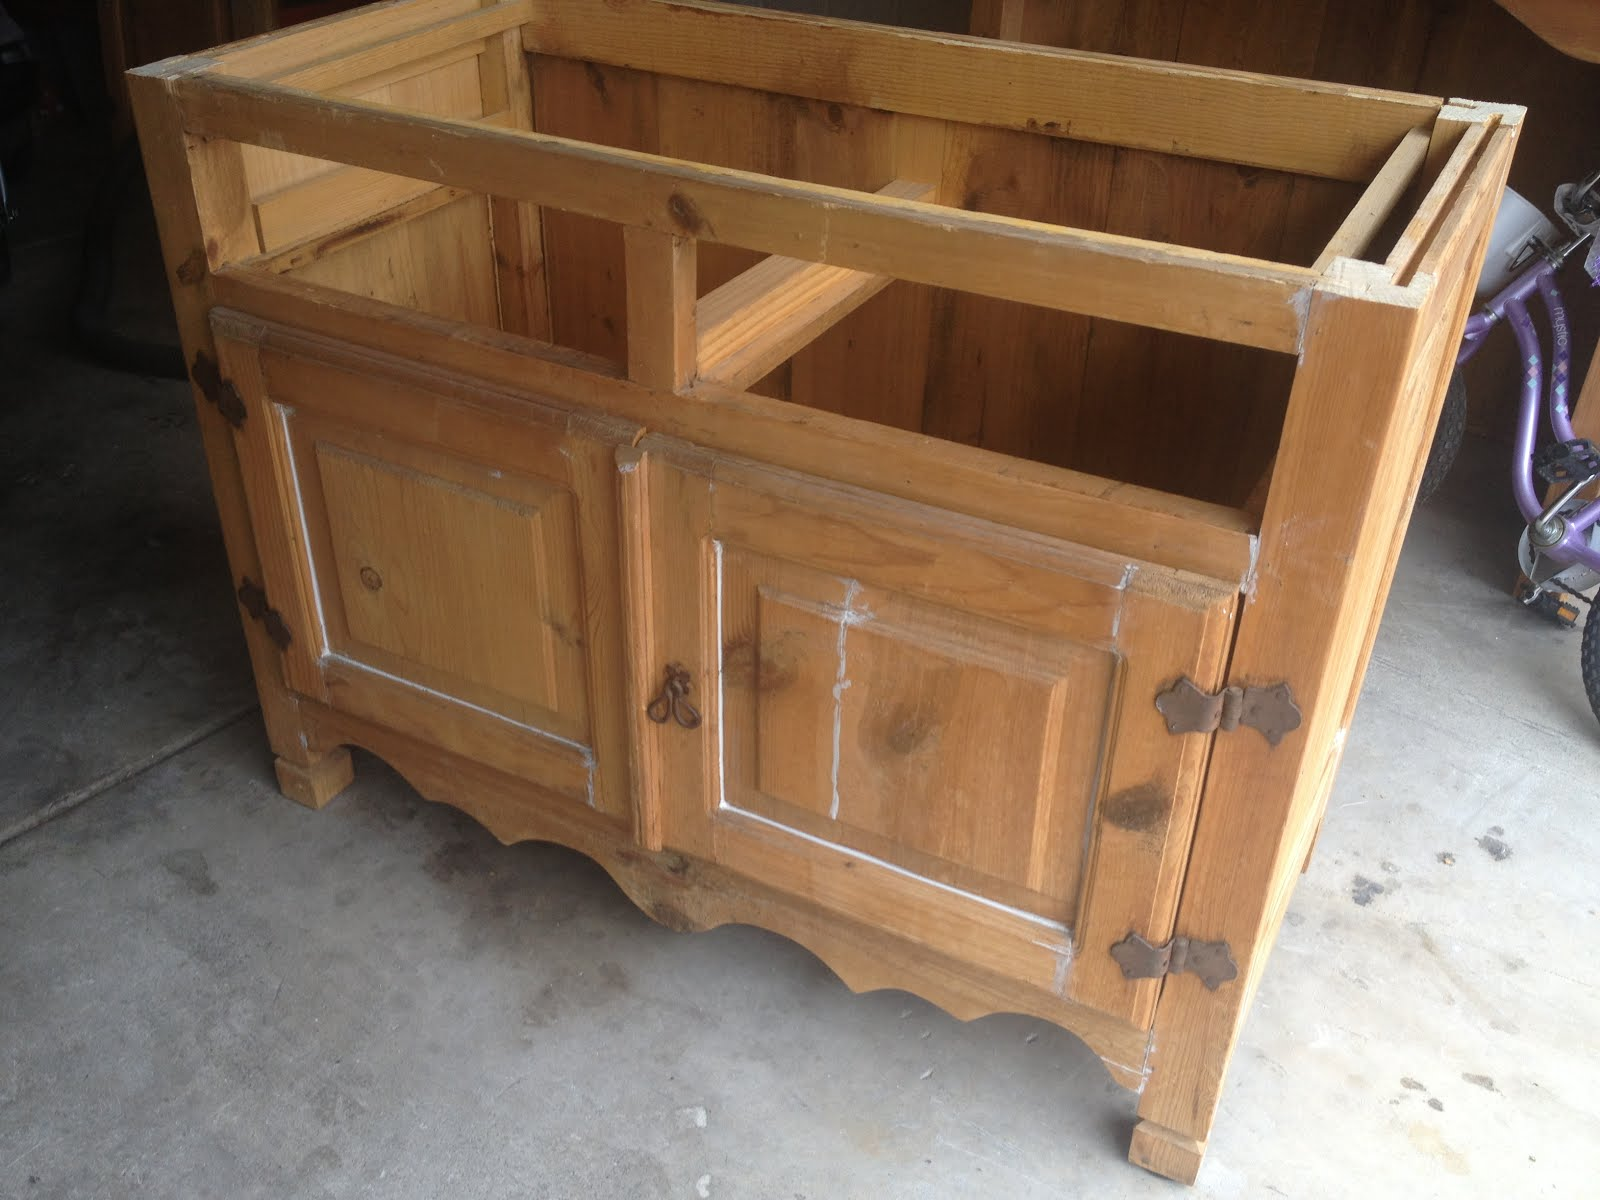 Mothering with Creativity DIY Kitchen Island from an Old Armoire